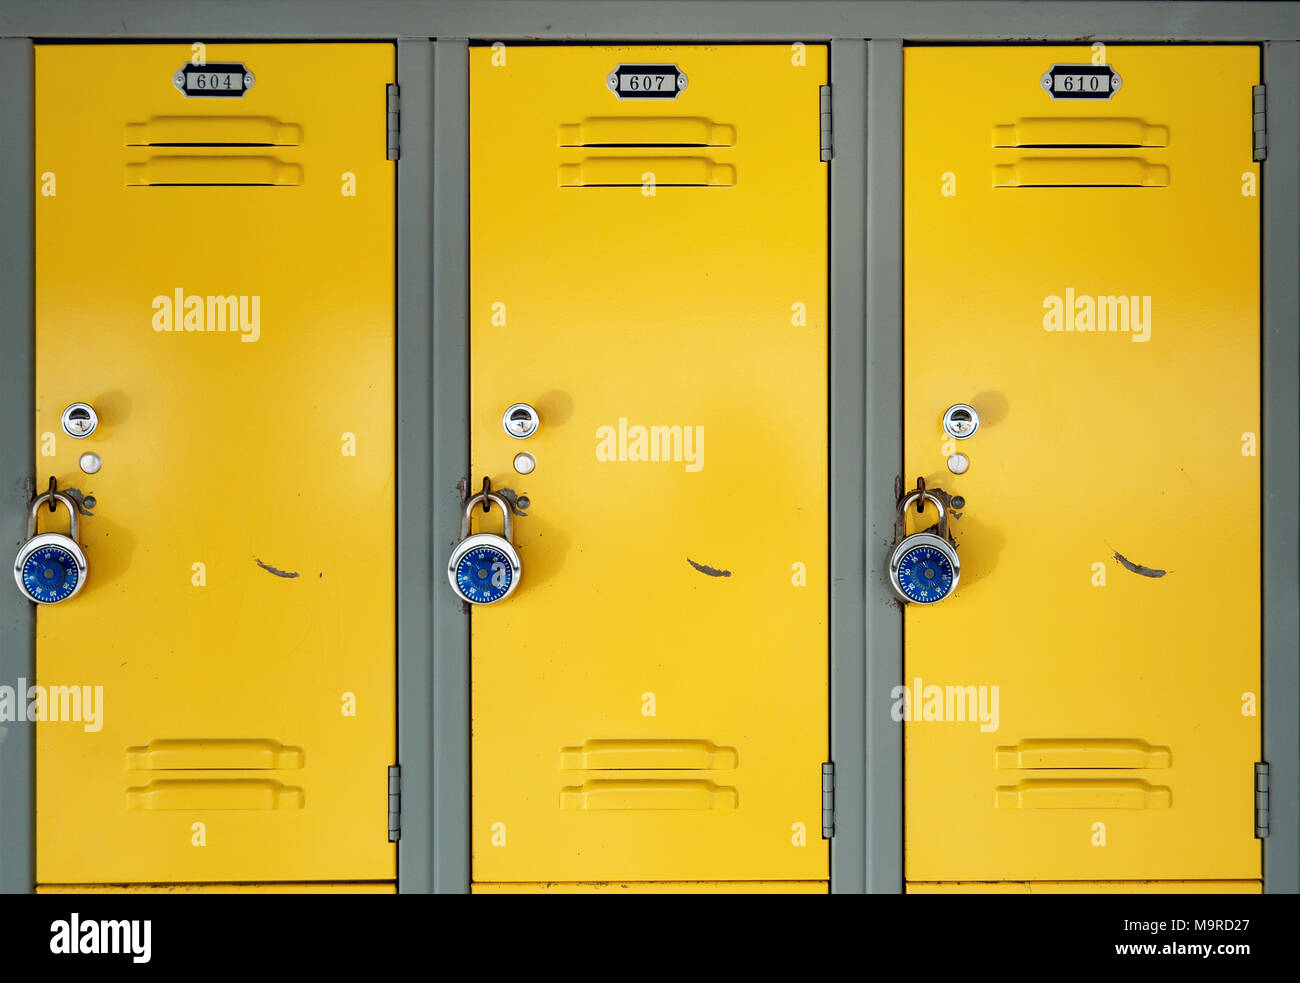 Yellow school lockers with locks - Three locker doors of three yellow lockers in the hallway of a school each with a stainless steel combination lock. & Yellow school lockers with locks - Three locker doors of three ...